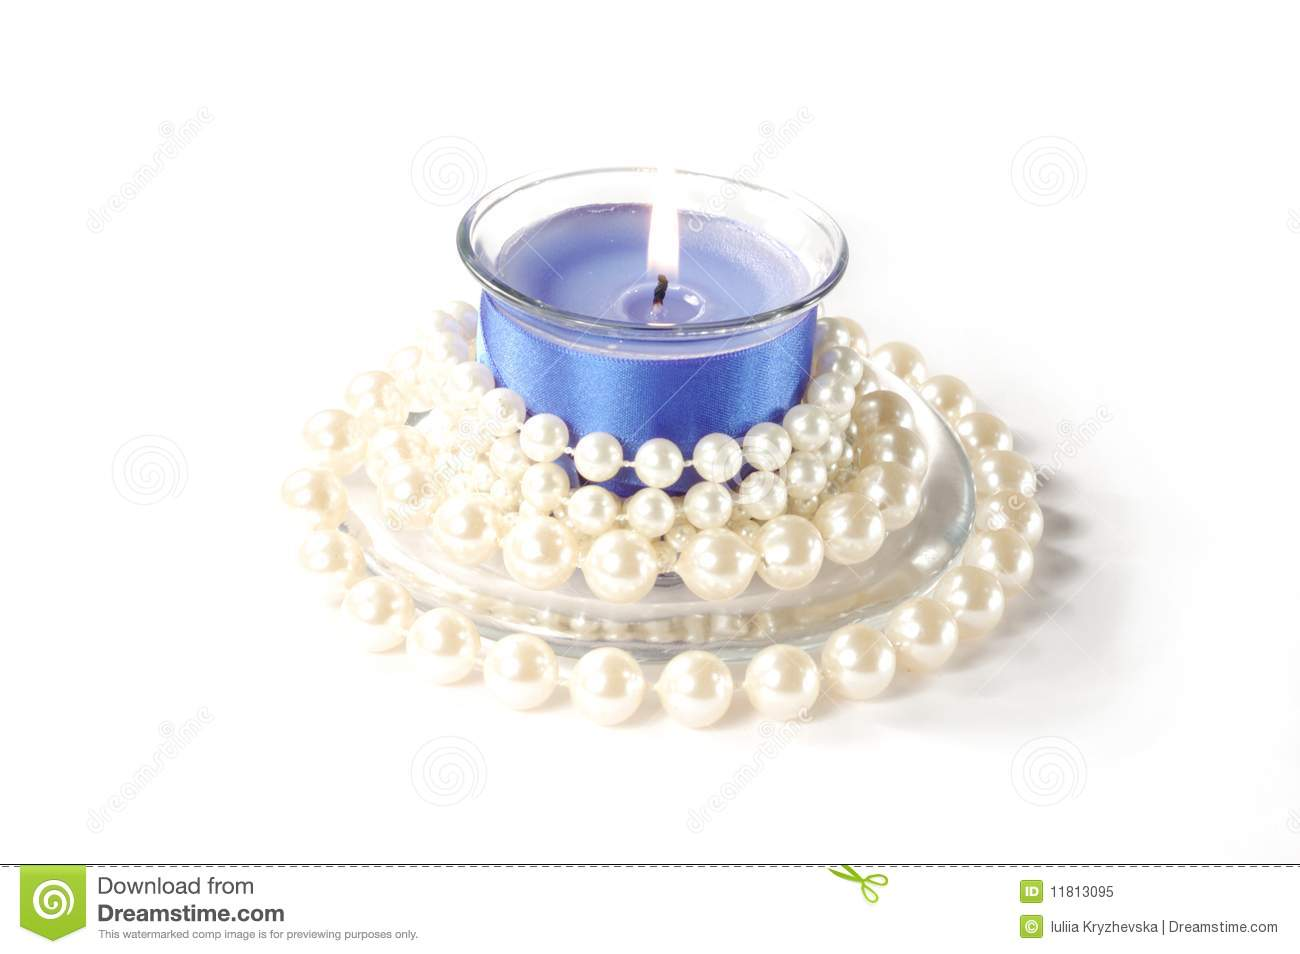 Christmas Candle On White Background Stock Image - Image of ... for Blue Candle White Background  186ref